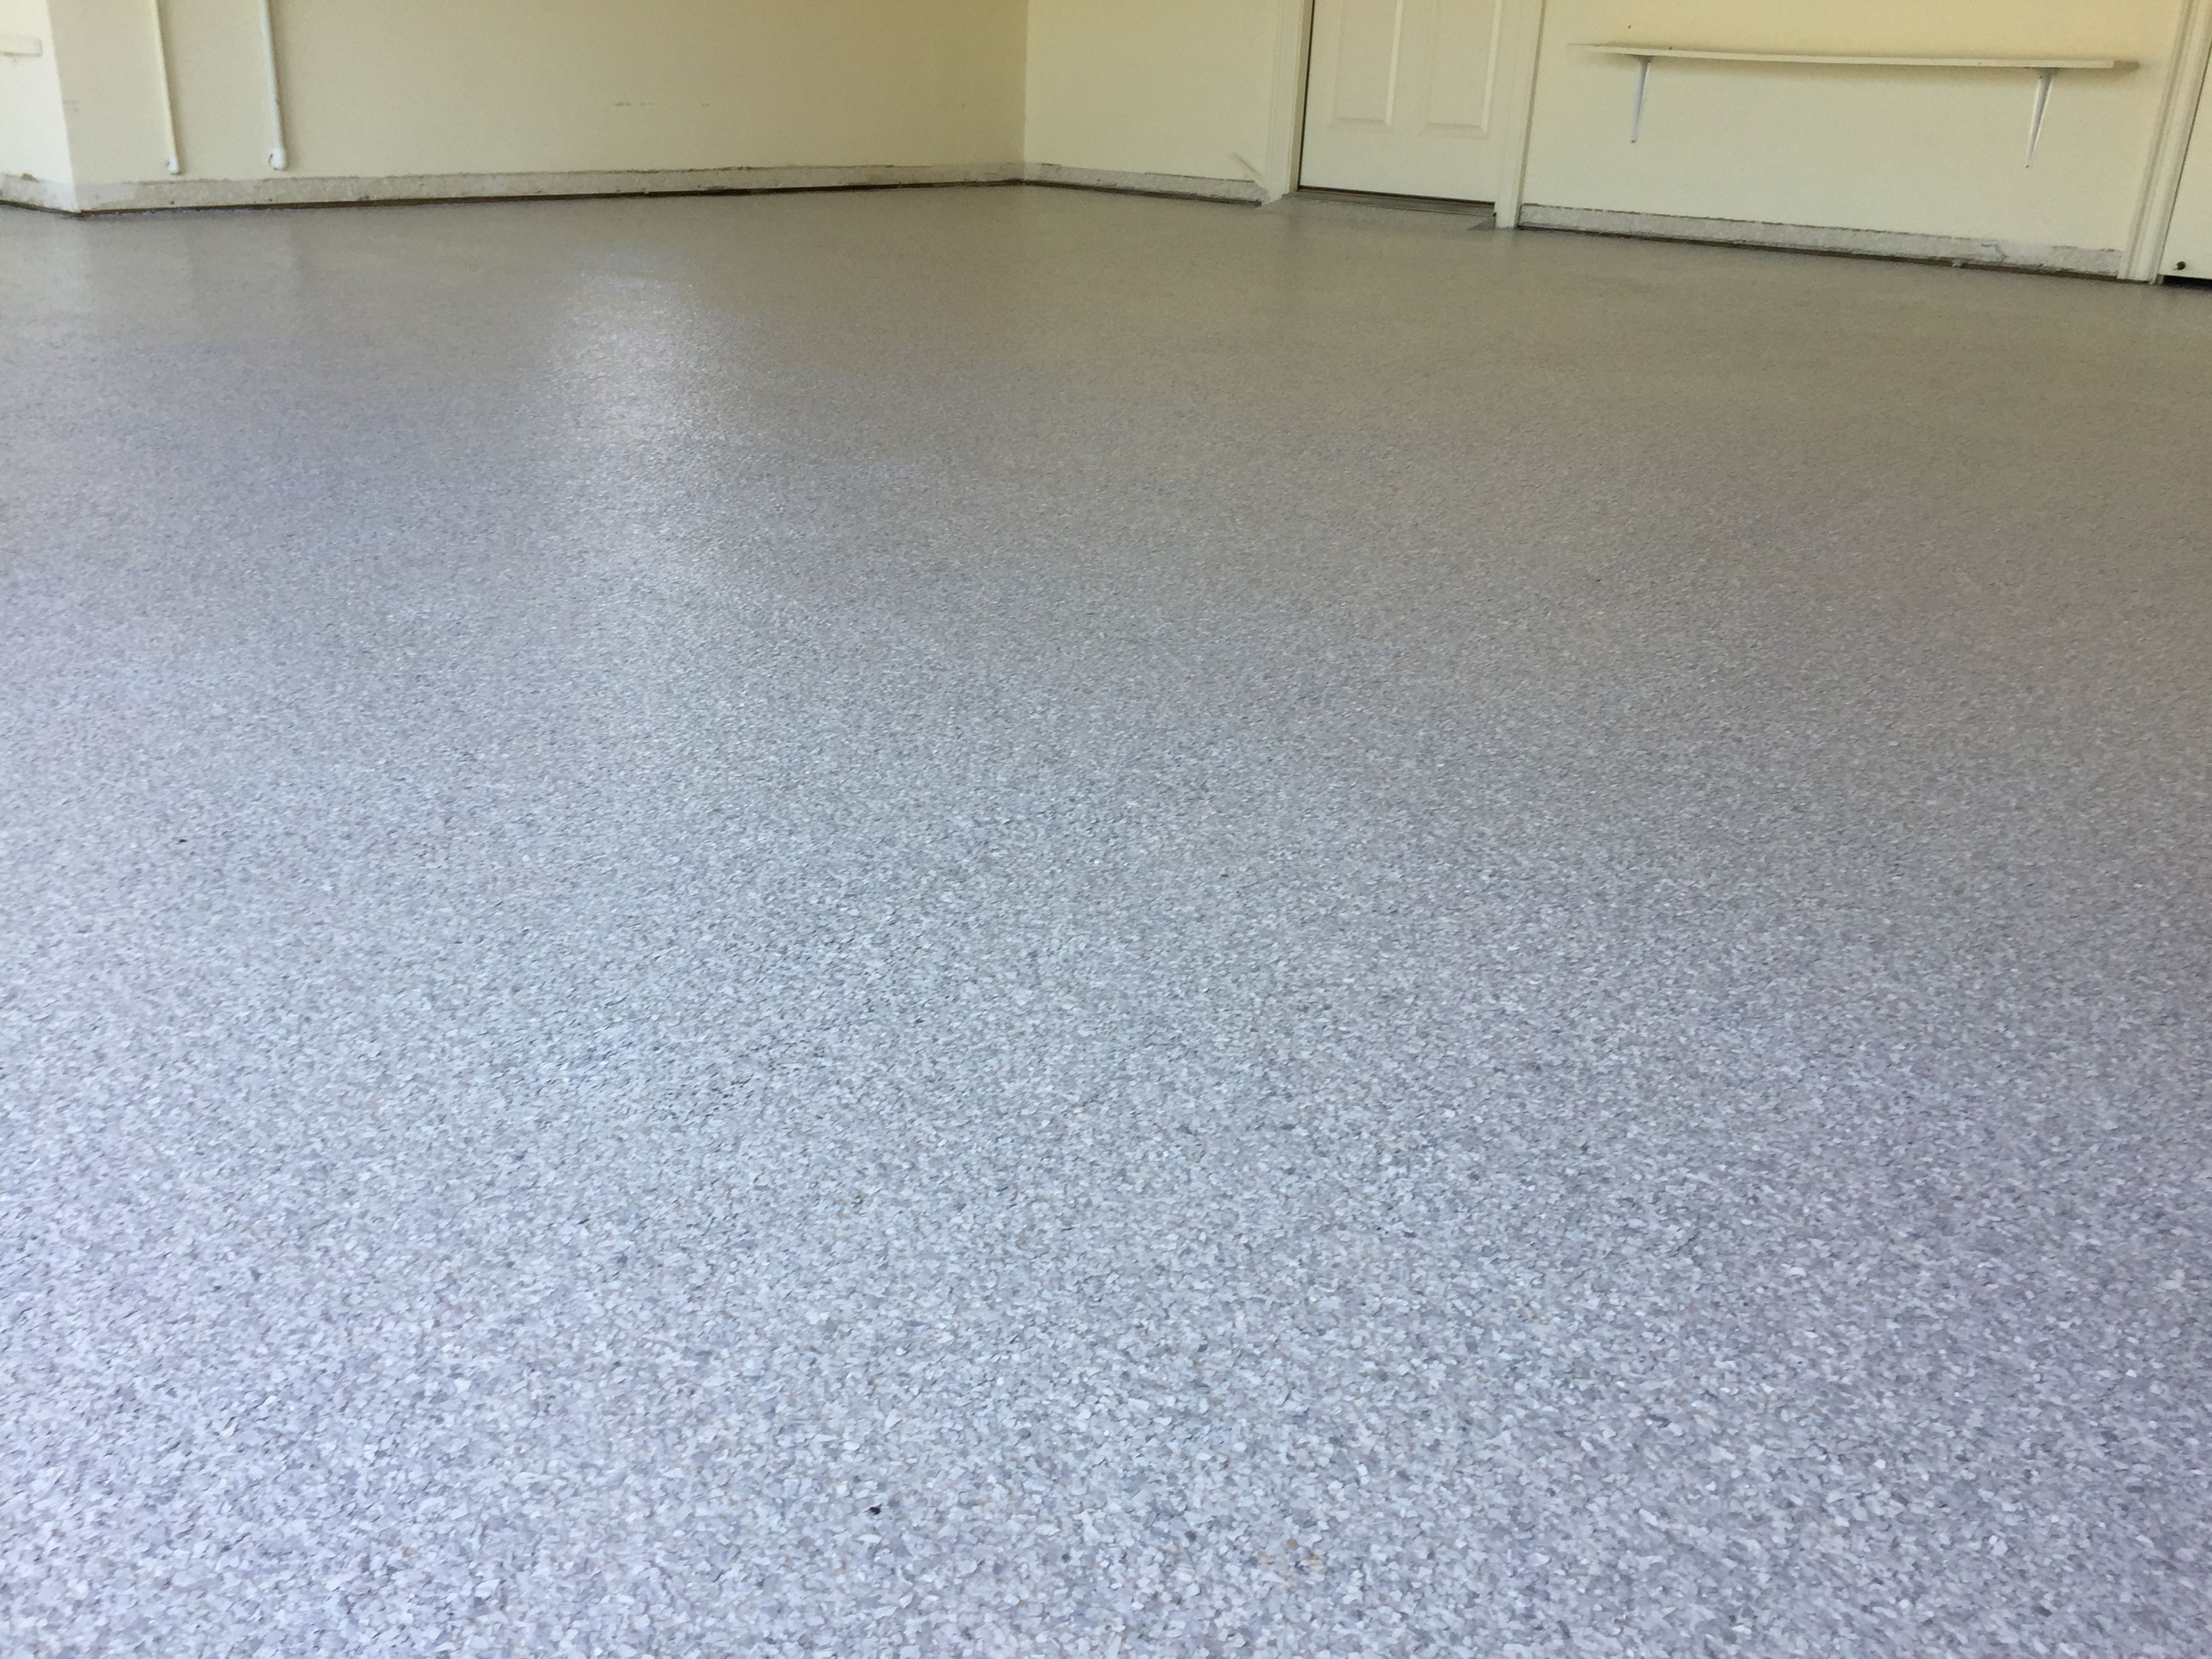 Garage Floor Coating Epoxy Flake Coating Patios Concrete Garage Floor Coatings Epoxy Garage Floor Coating Epoxy Floor